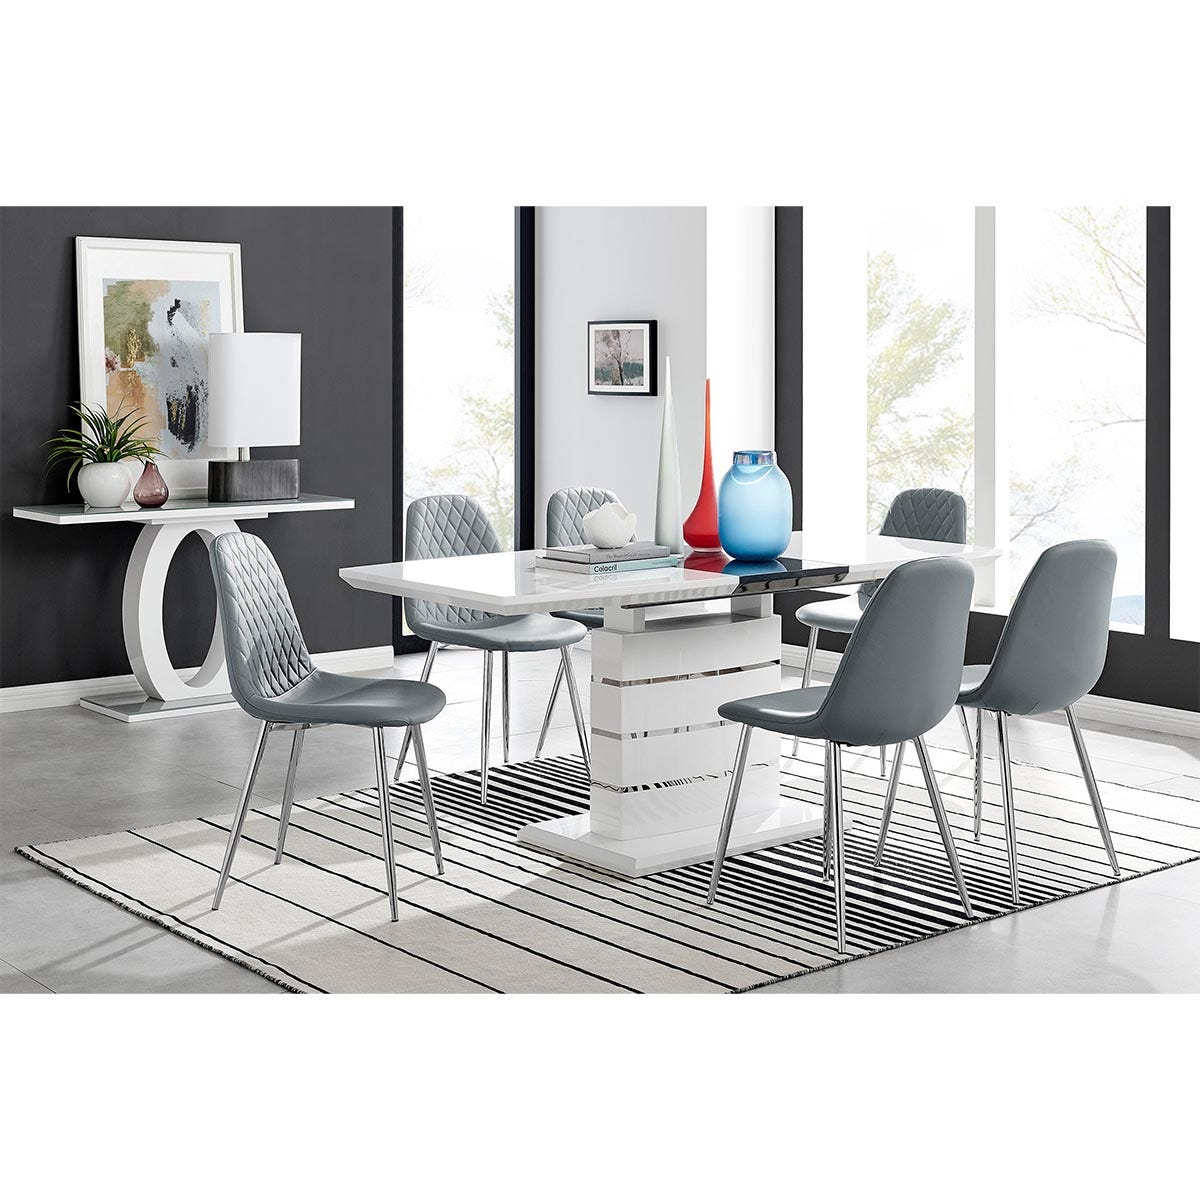 Furniture Box Renato High Gloss Extending Dining Table and 6 Grey Corona Silver Leg Chairs